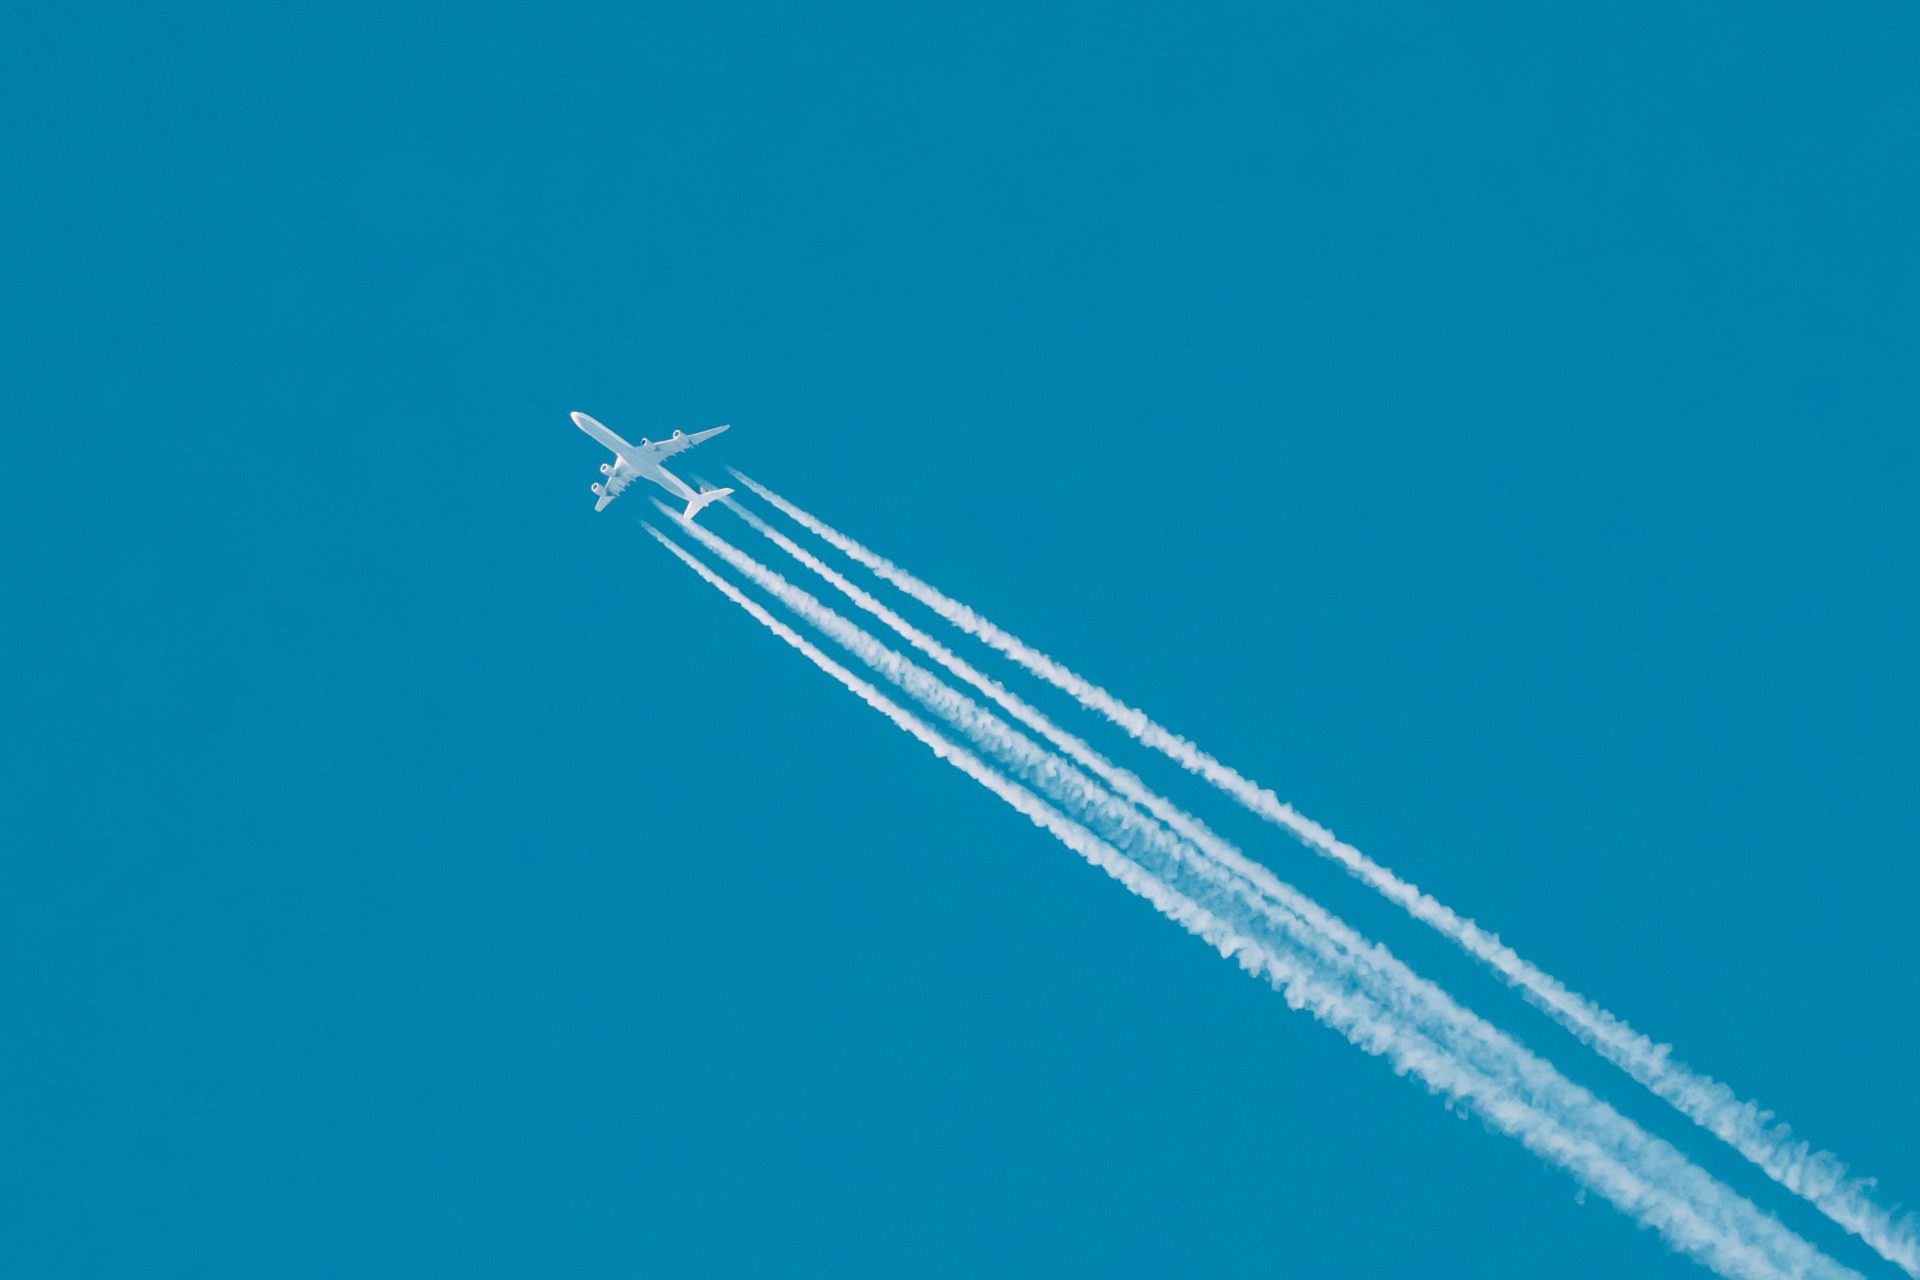 Contrail In Blue Sky. Plane, Clear Sunny Sky Background. Airplane Aircraft In Sky With Plane Trails